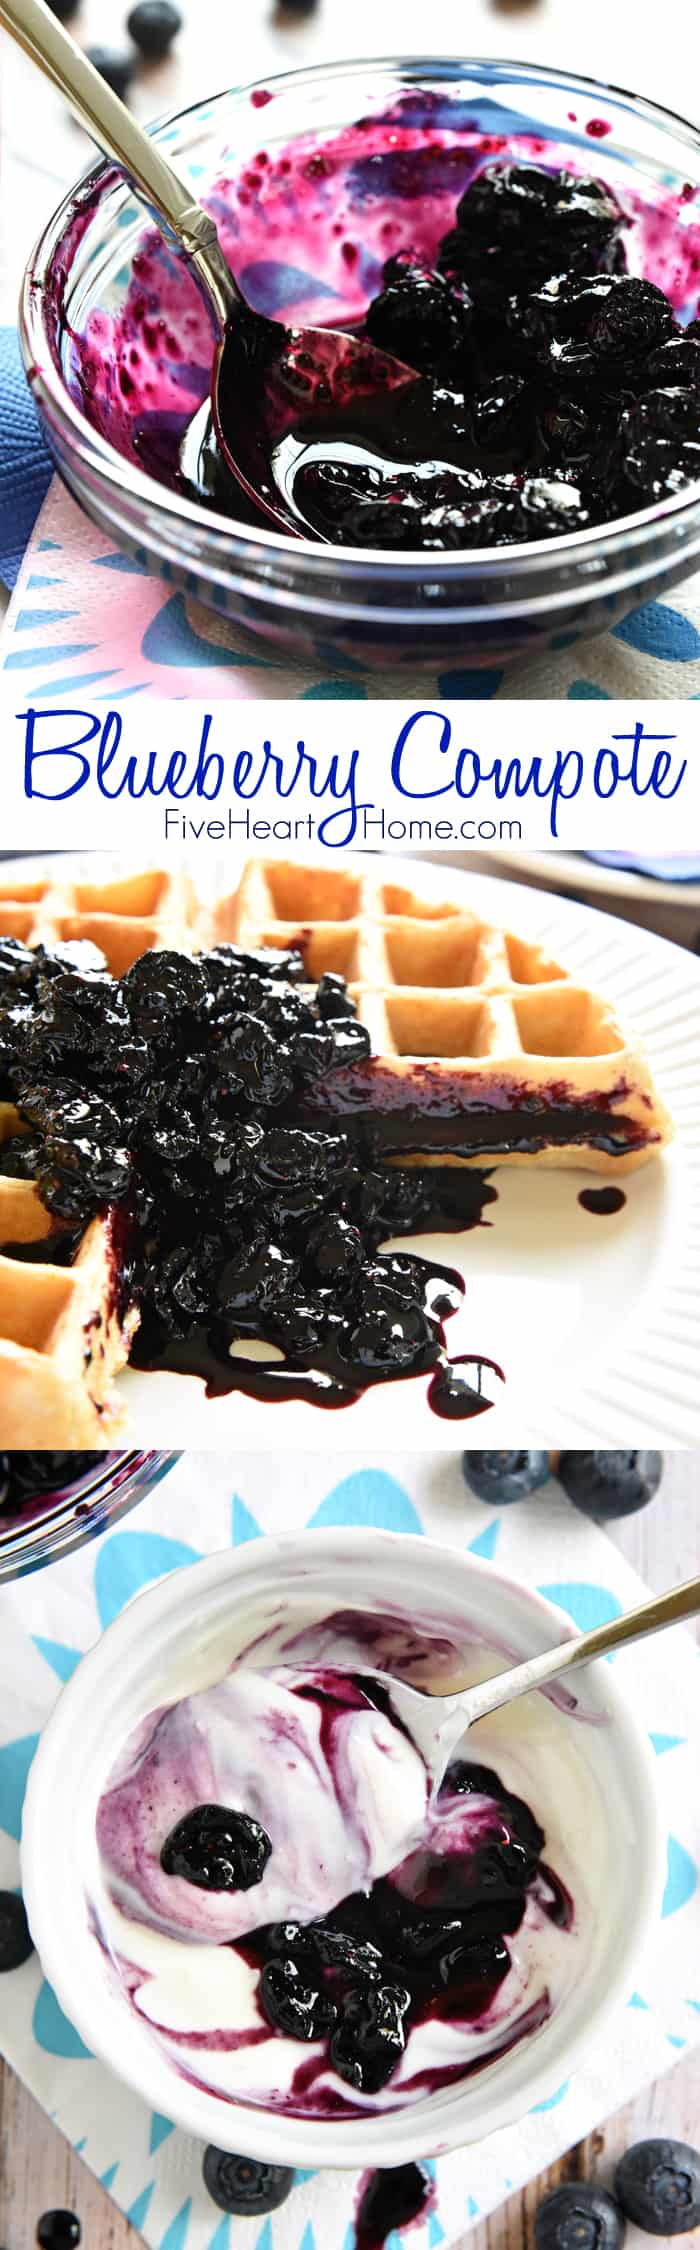 Blueberry Compote ~ frozen blueberries are cooked down into a glossy ...